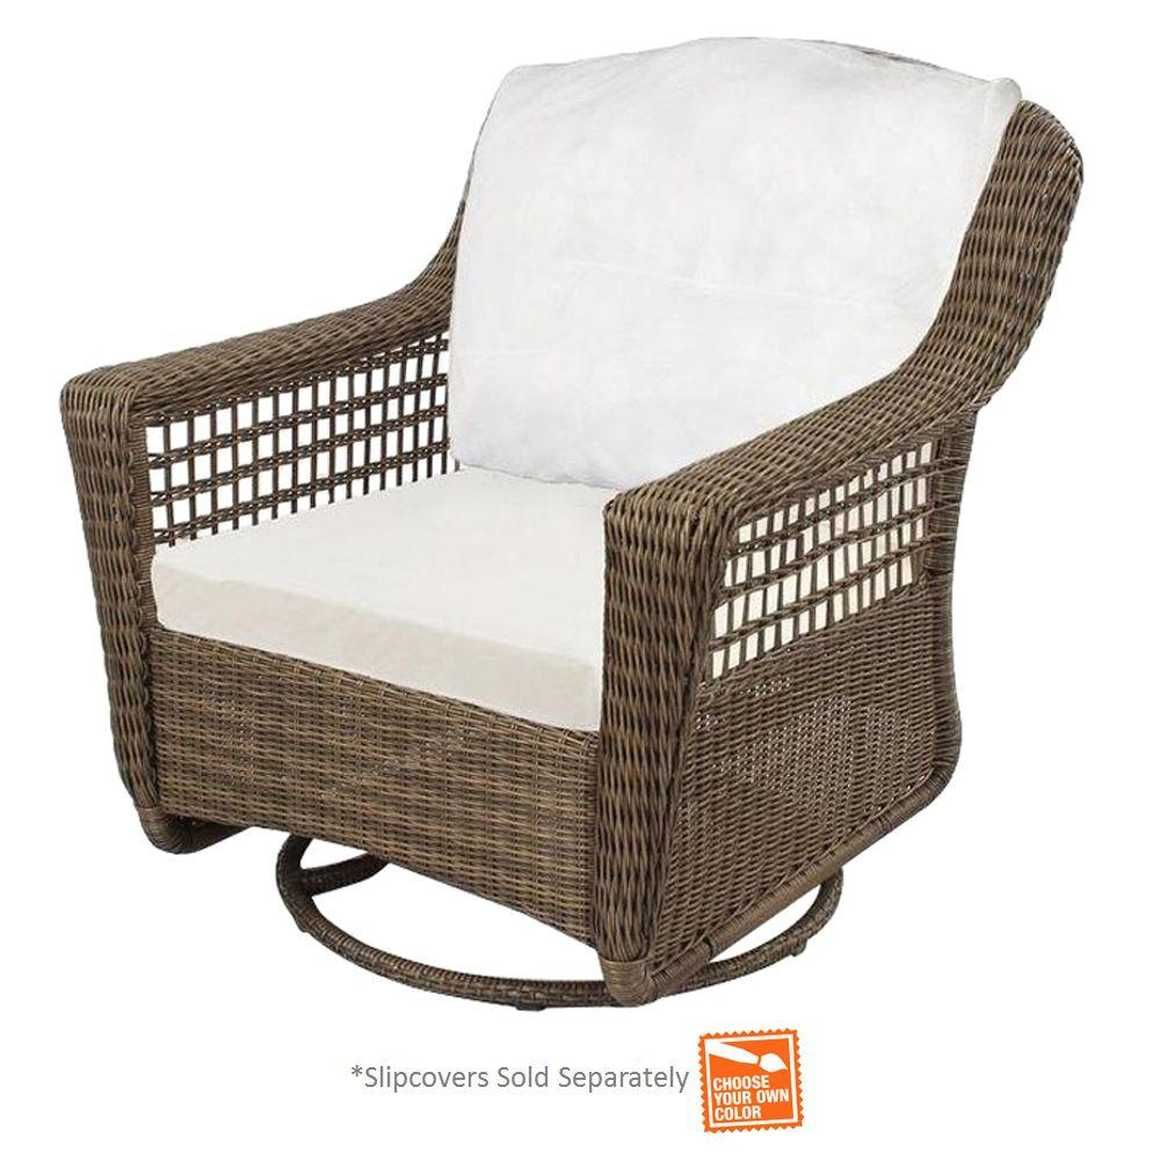 Hampton Bay Spring Haven Grey Wicker Outdoor Patio Swivel Rocker Chair With Cushions Included Choose Your Own Color Home Depot Outdoor Chair Cushions Patio Cushions Outdoor Wicker Patio Furniture